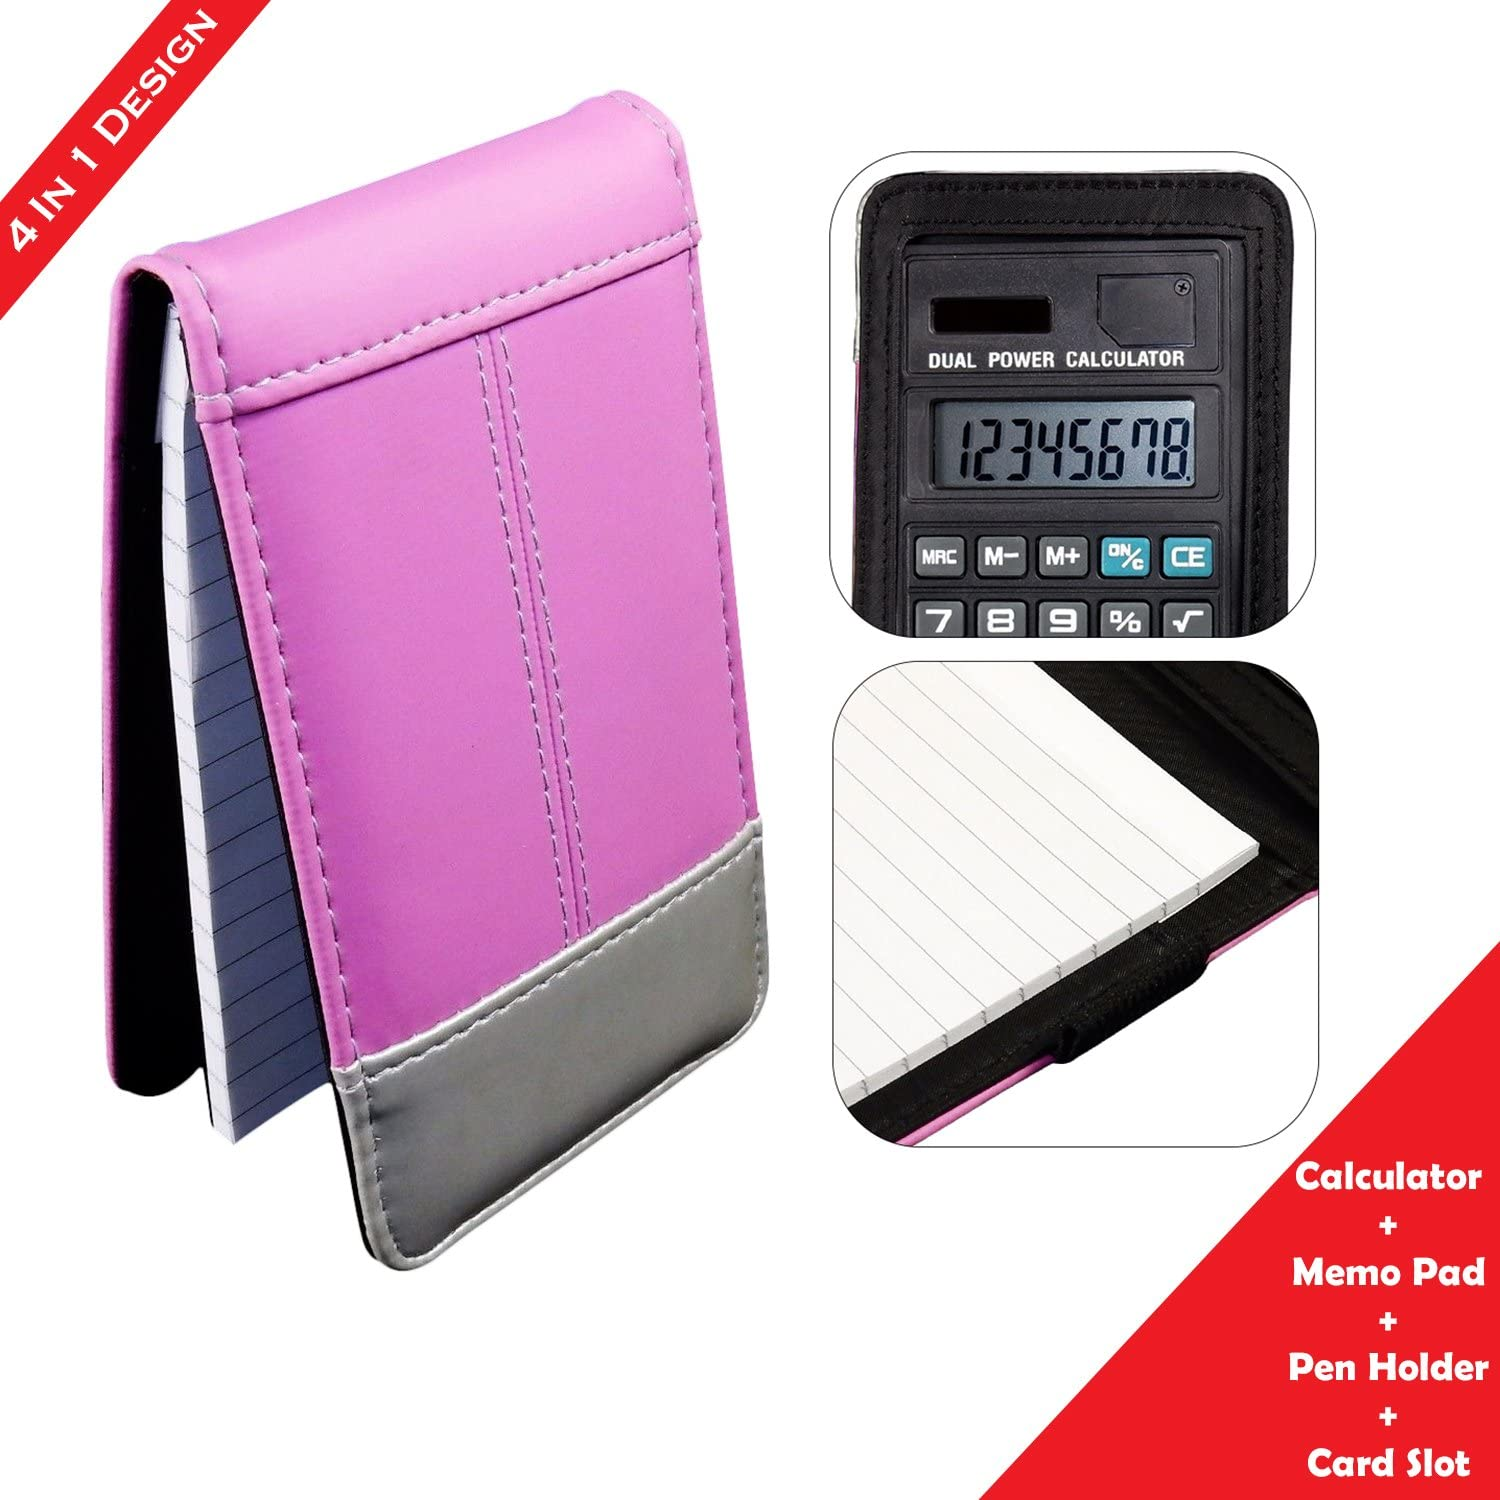 Jotter Note Pad With Calculator, School, Office, Travel - Pink